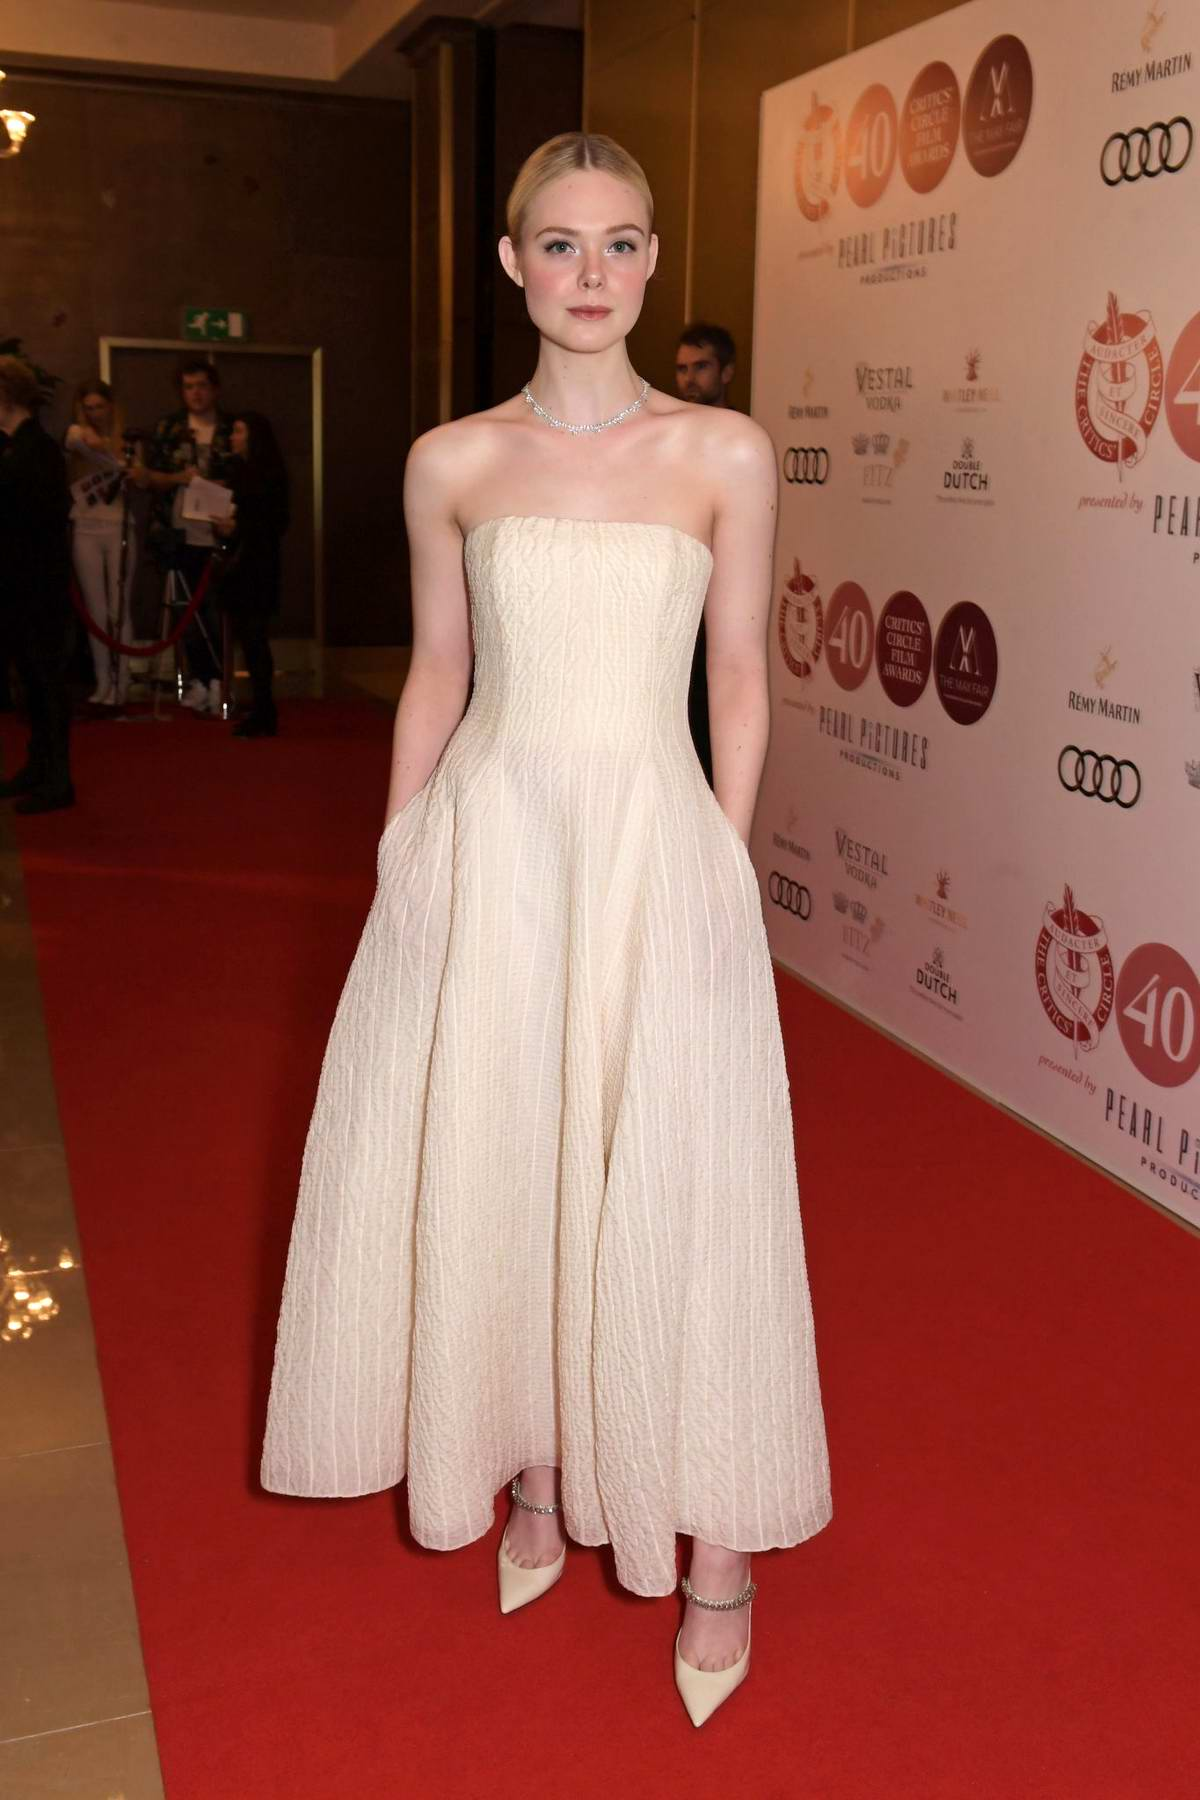 Elle Fanning attends the 40th London Film Critics' Circle Awards in London, UK